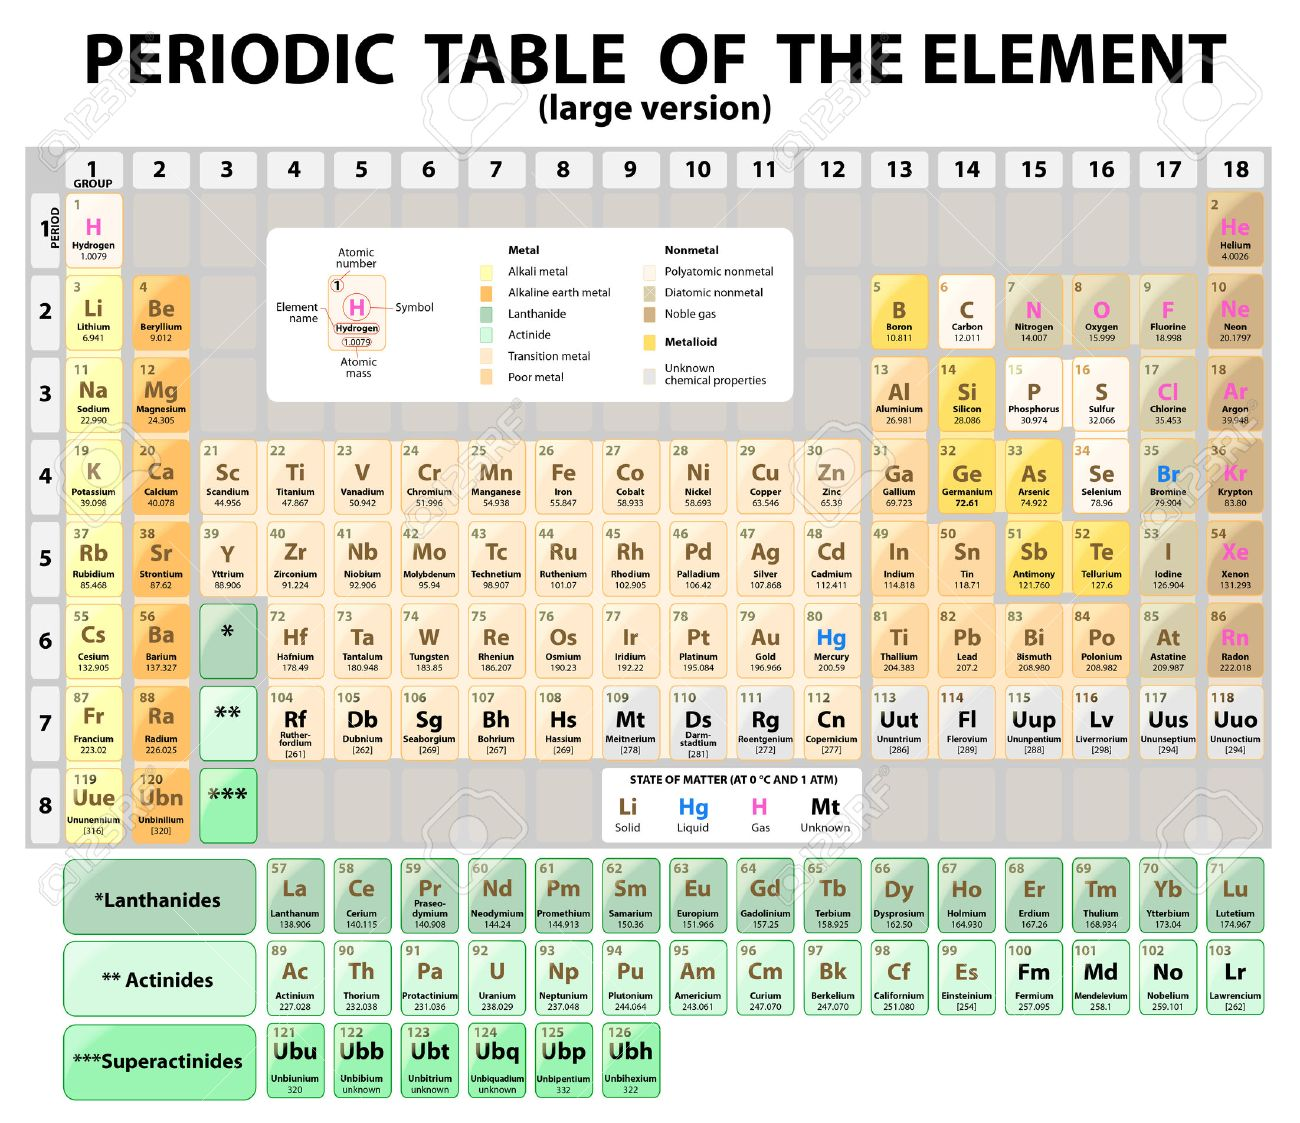 Periodic table of the elements with atomic number symbol and periodic table of the elements with atomic number symbol and weight large version urtaz